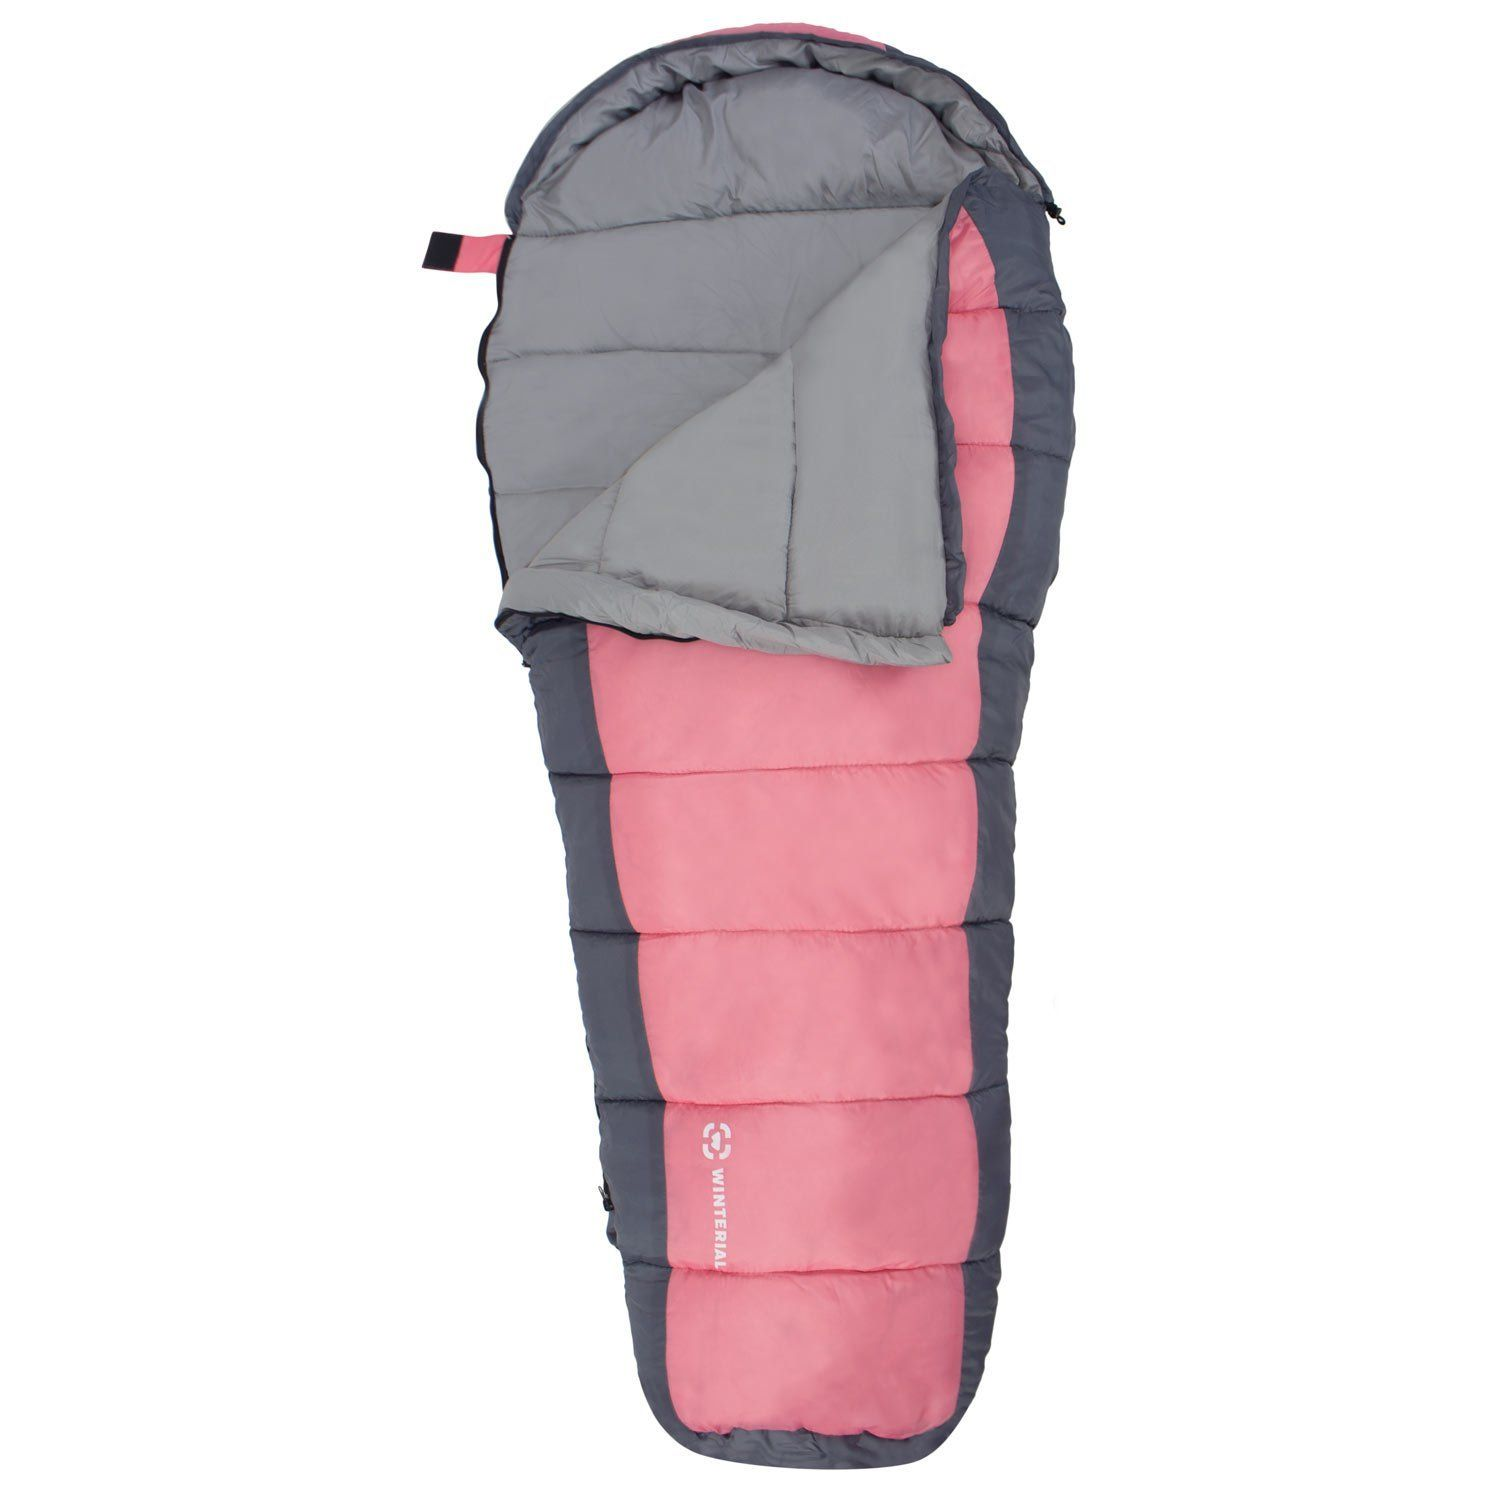 Winterial Kids Sleeping Bag Youth Mummy Bag Camp This is an